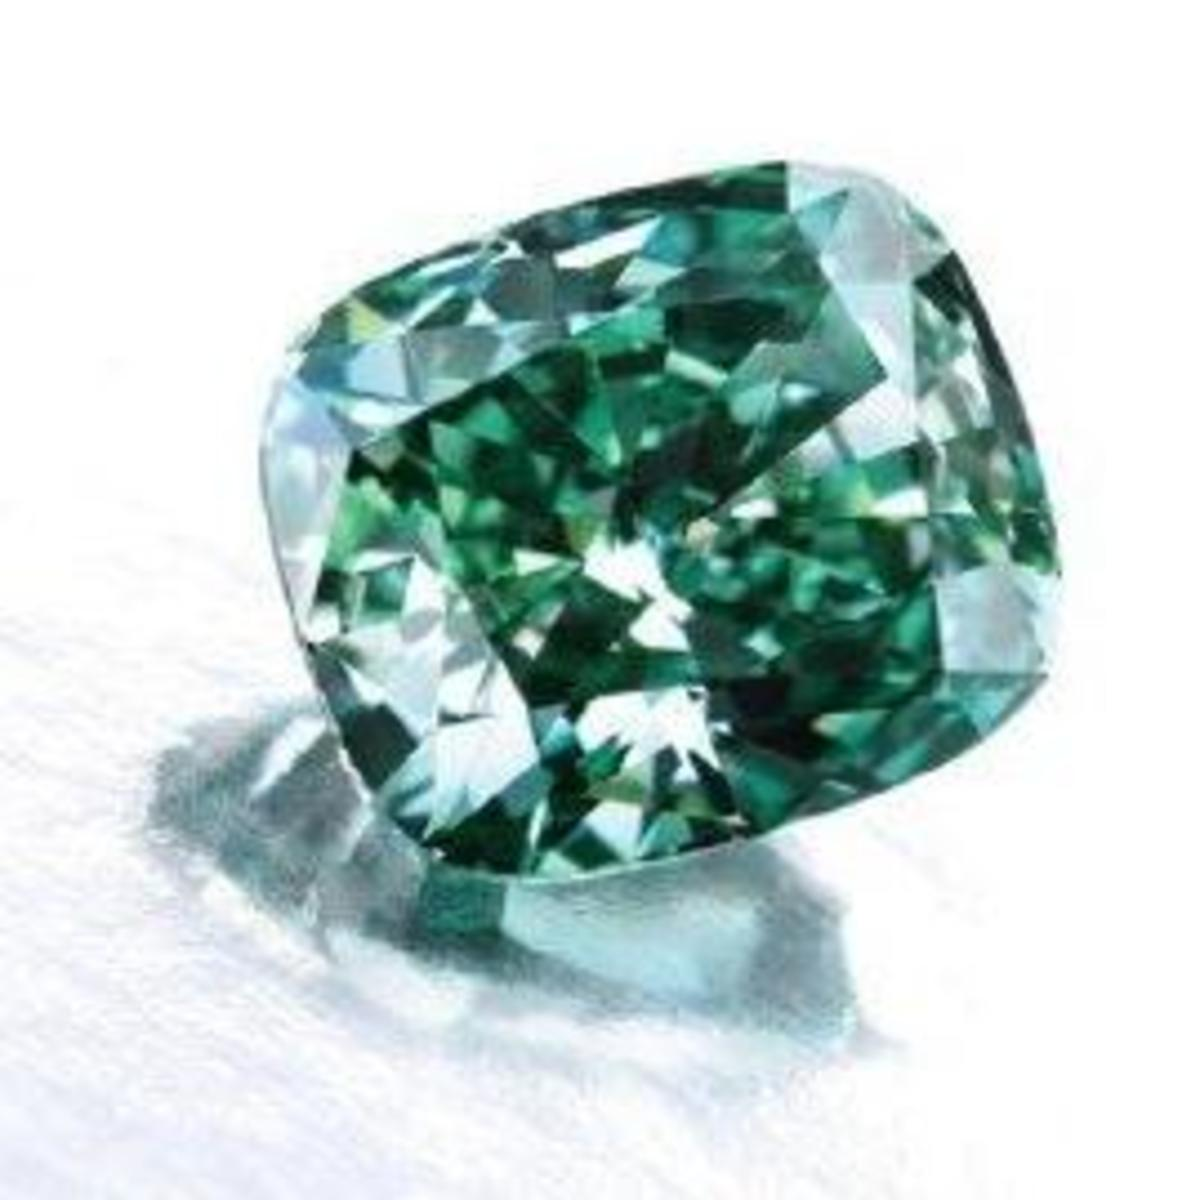 Green Diamonds- Rare and Beautiful